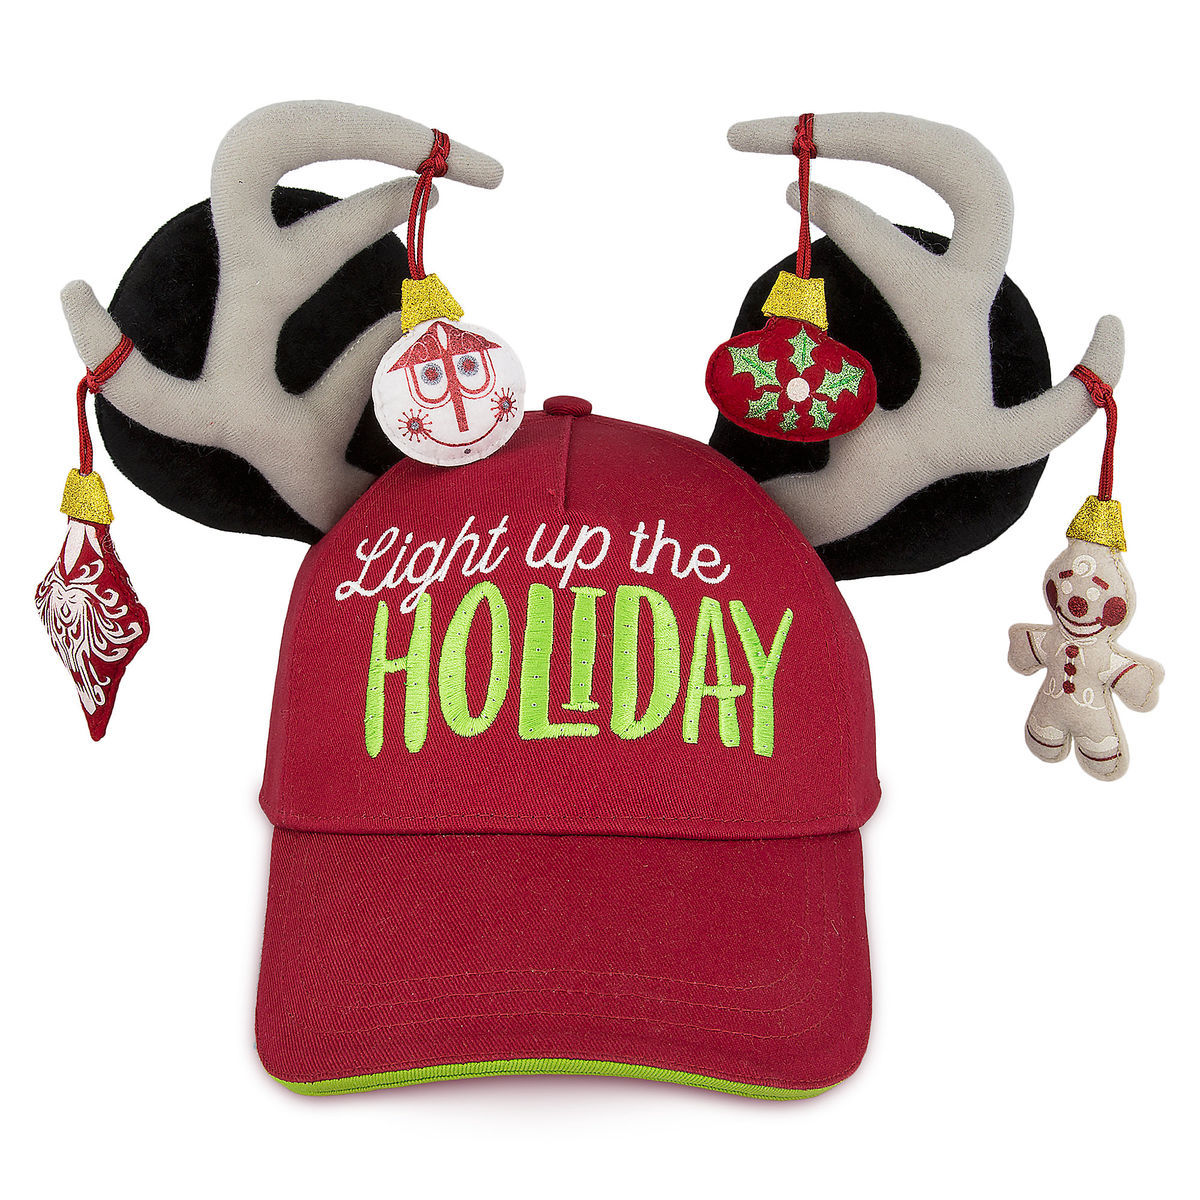 3e185725863cf Disney Hat - Baseball Cap - Light up the Holiday - Reindeer